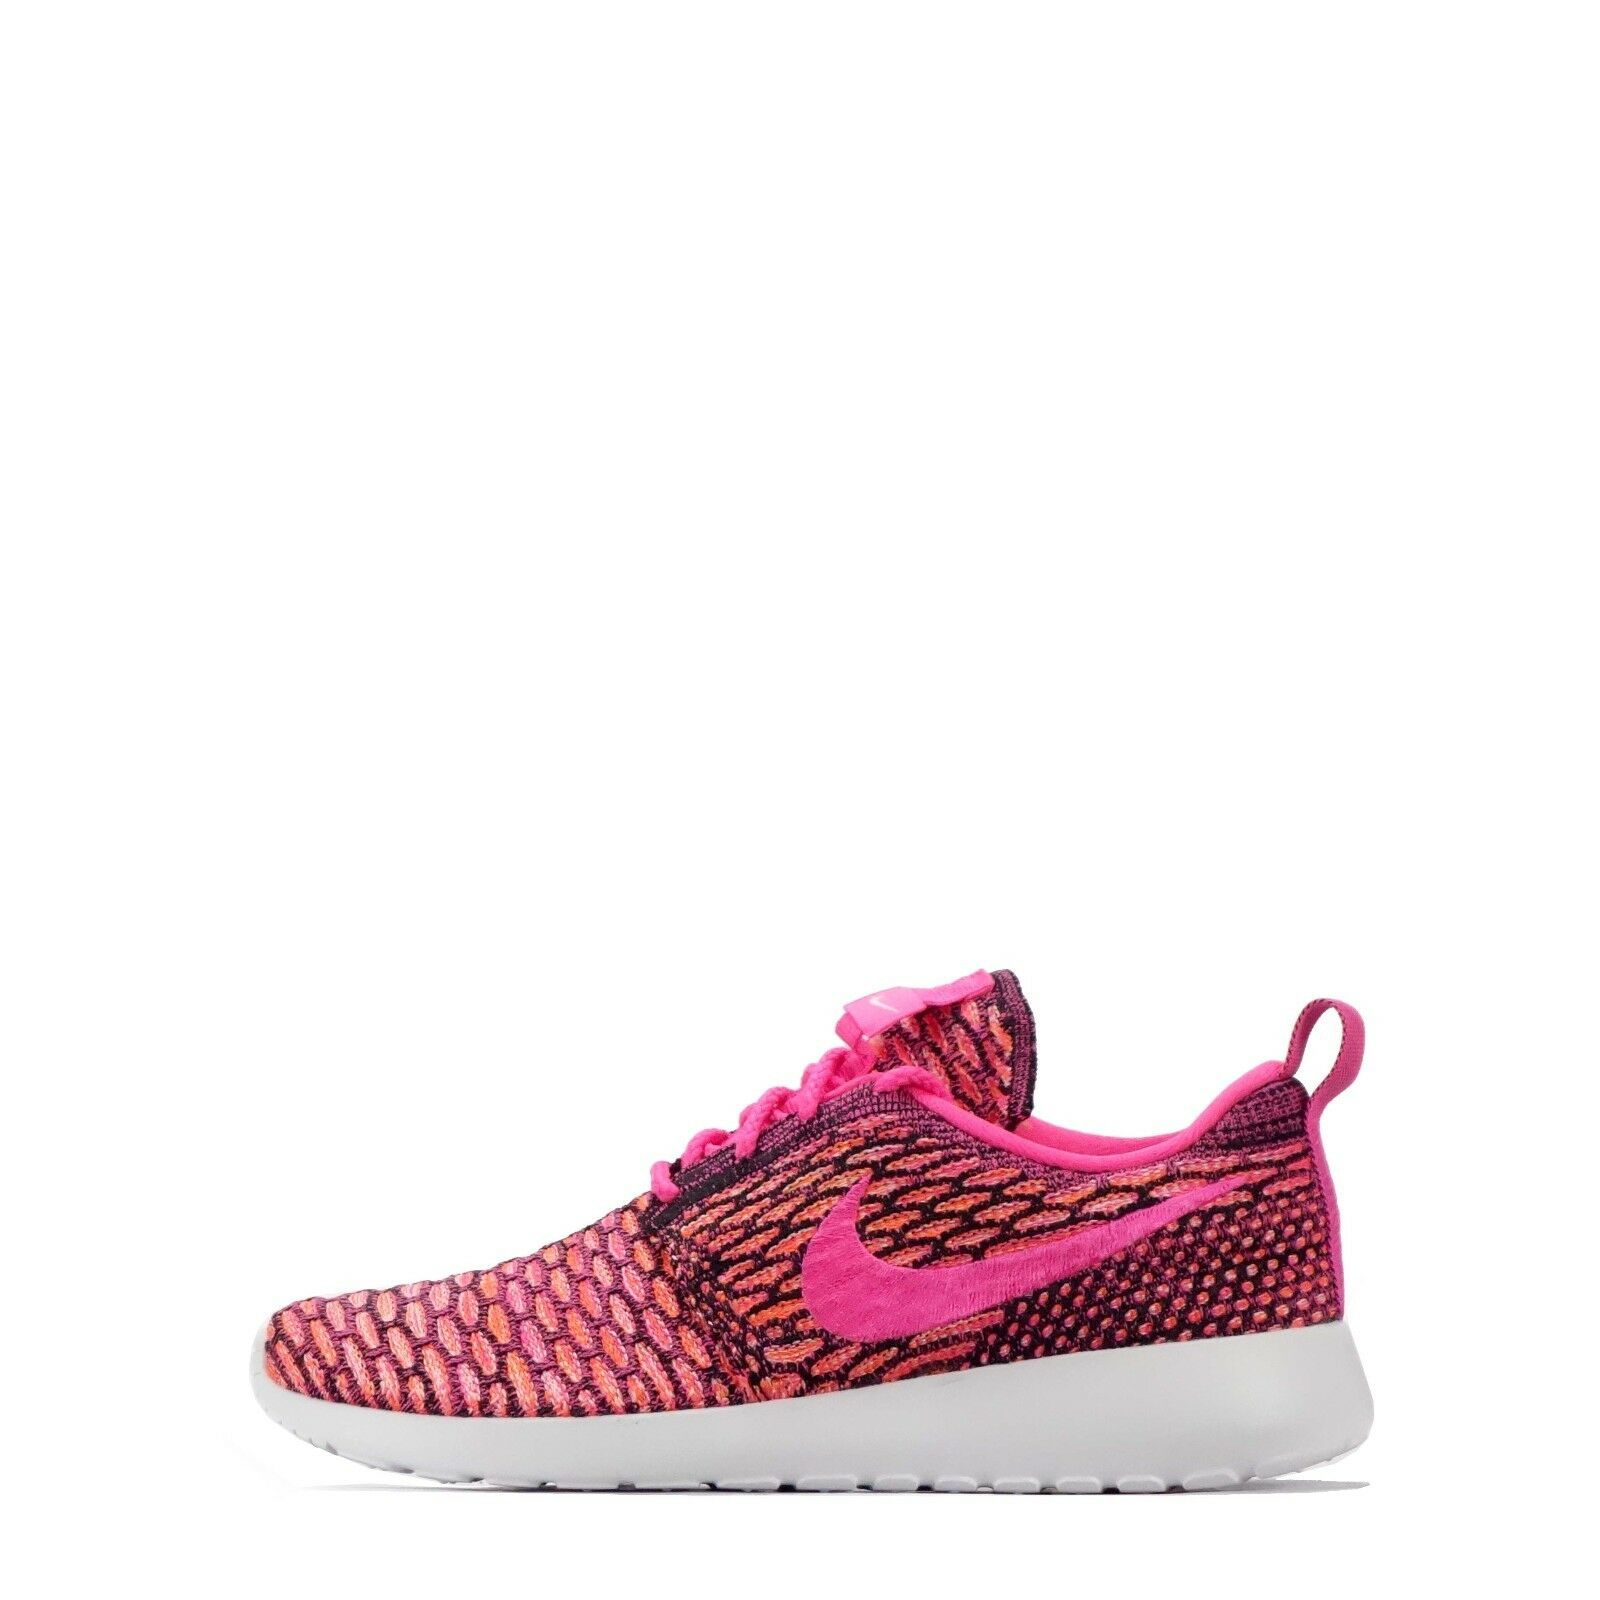 Nike Roshe Run One Flyknit Women's Trainers Shoes Pink Pow/White